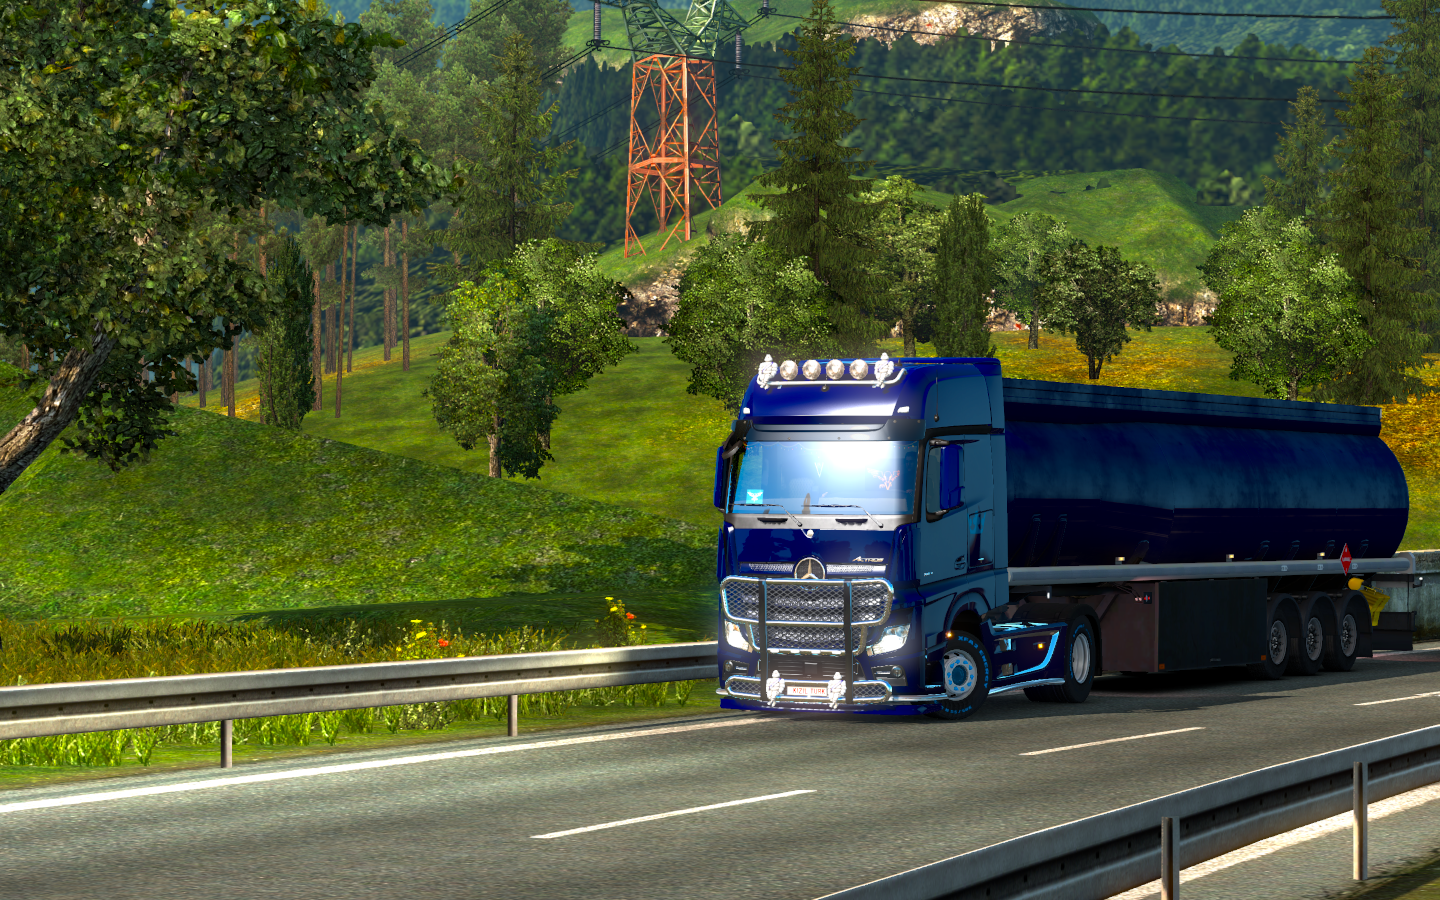 ets2_20190305_205953_00.png